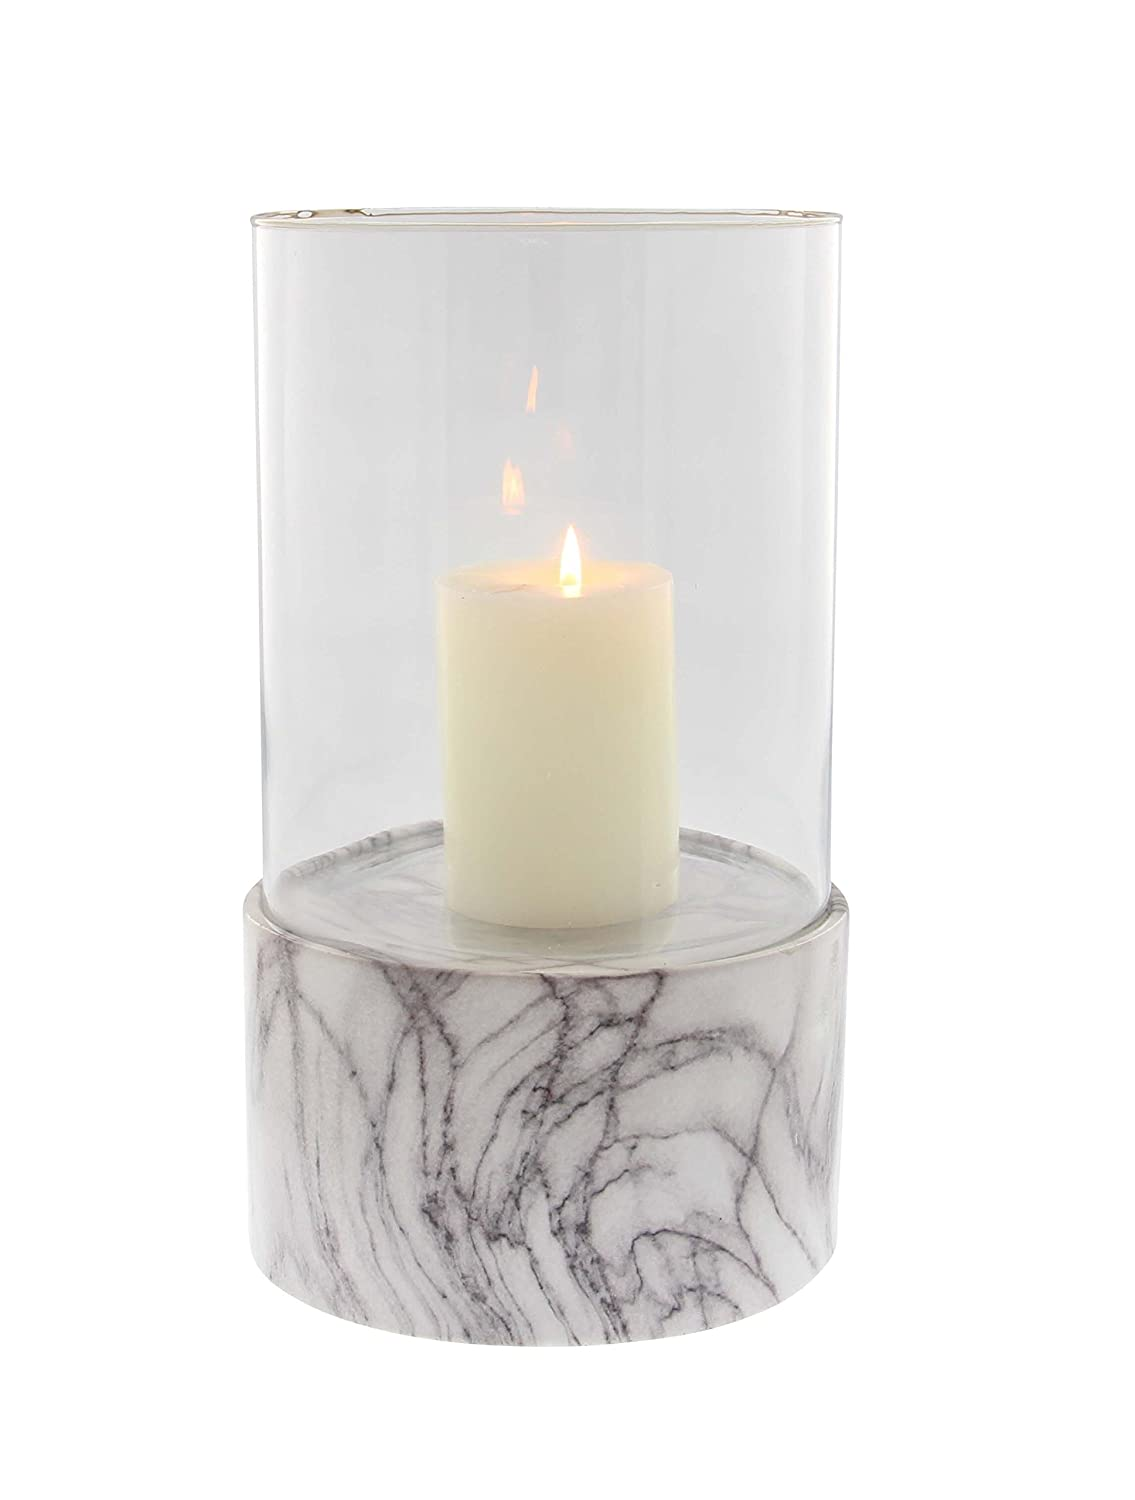 Deco 79 60760 Cylindrical Ceramic Glass Hurricane Candle Holder 13 x 8 Gray//White//Clear 13 x 8